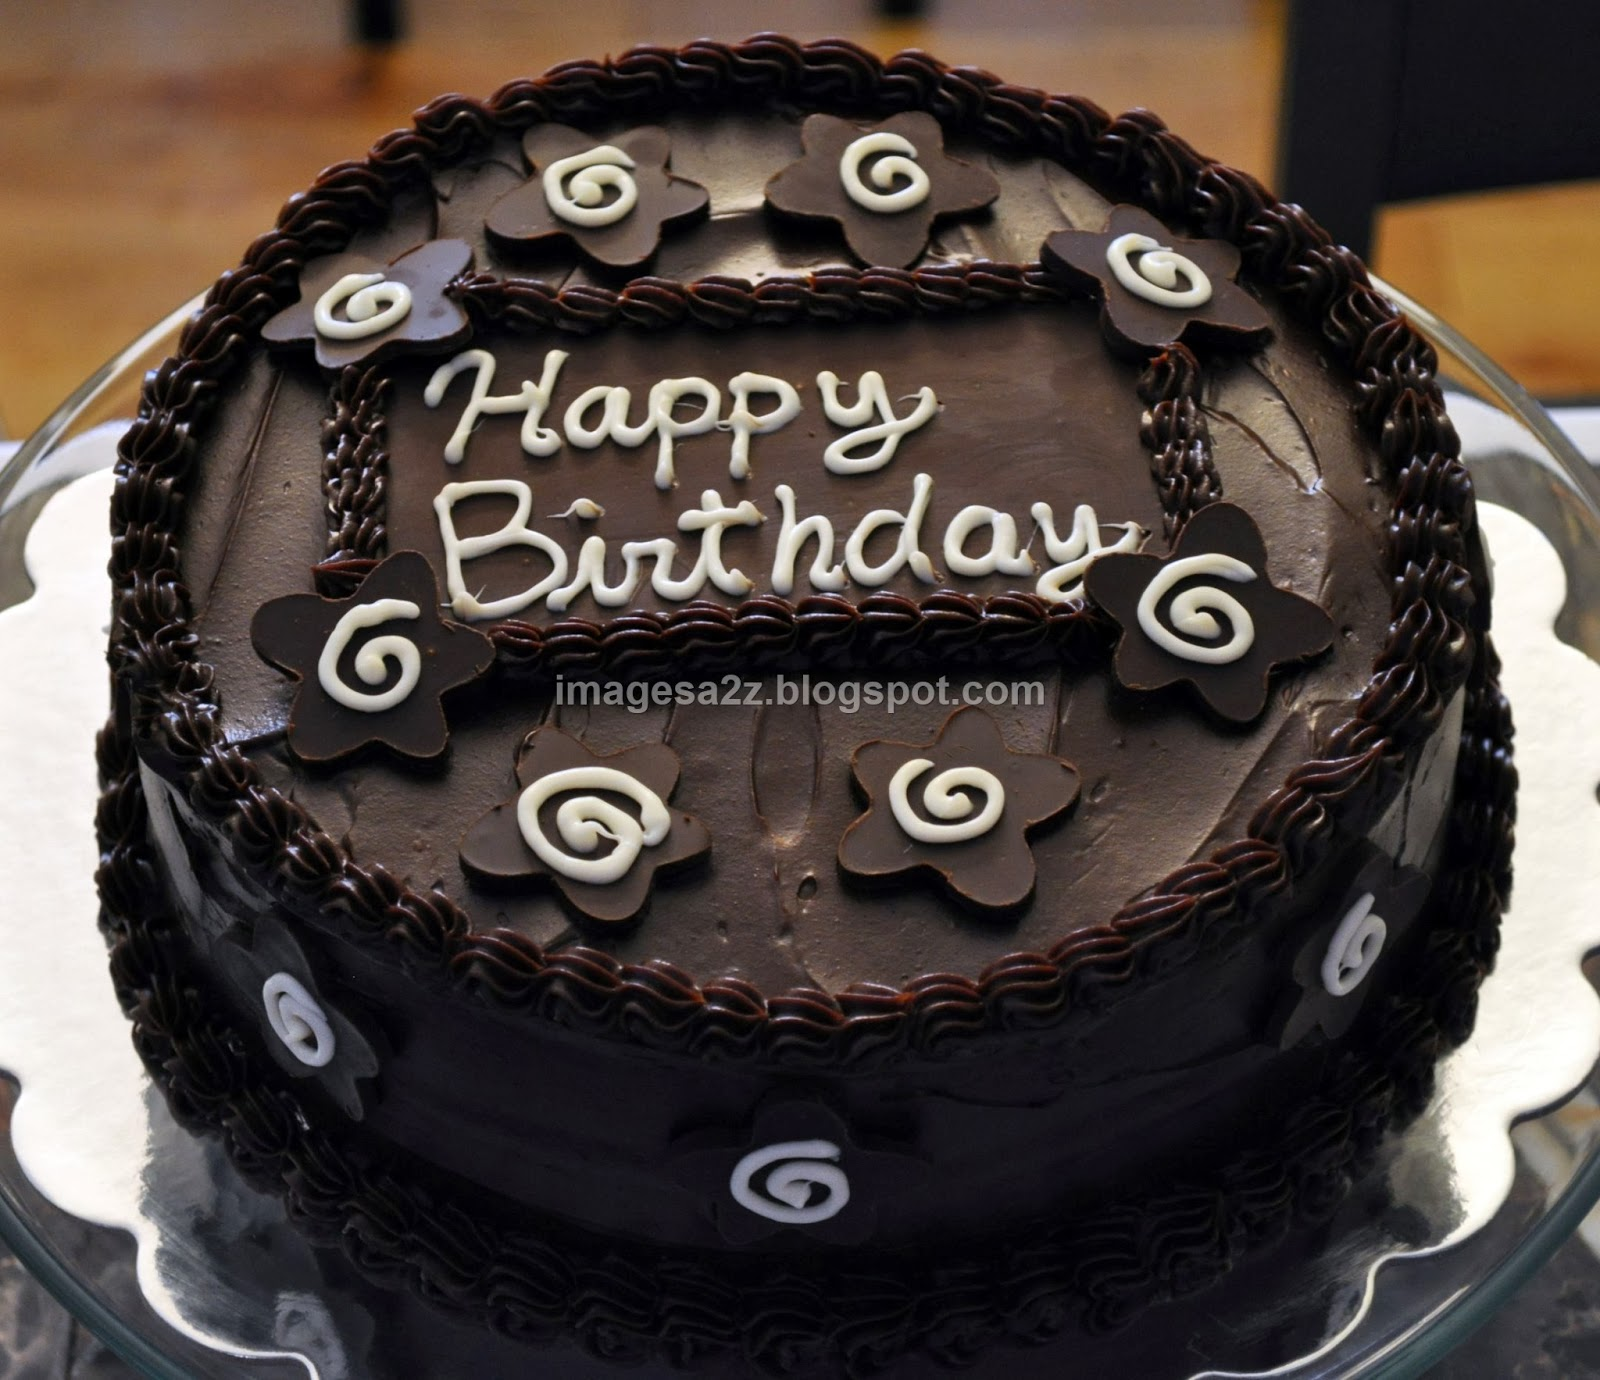 Cake Images For Birthday Wishes : birthday wishes for sister with cake images - happy-birthday-wishes-quotes-cakes-messages-sms ...